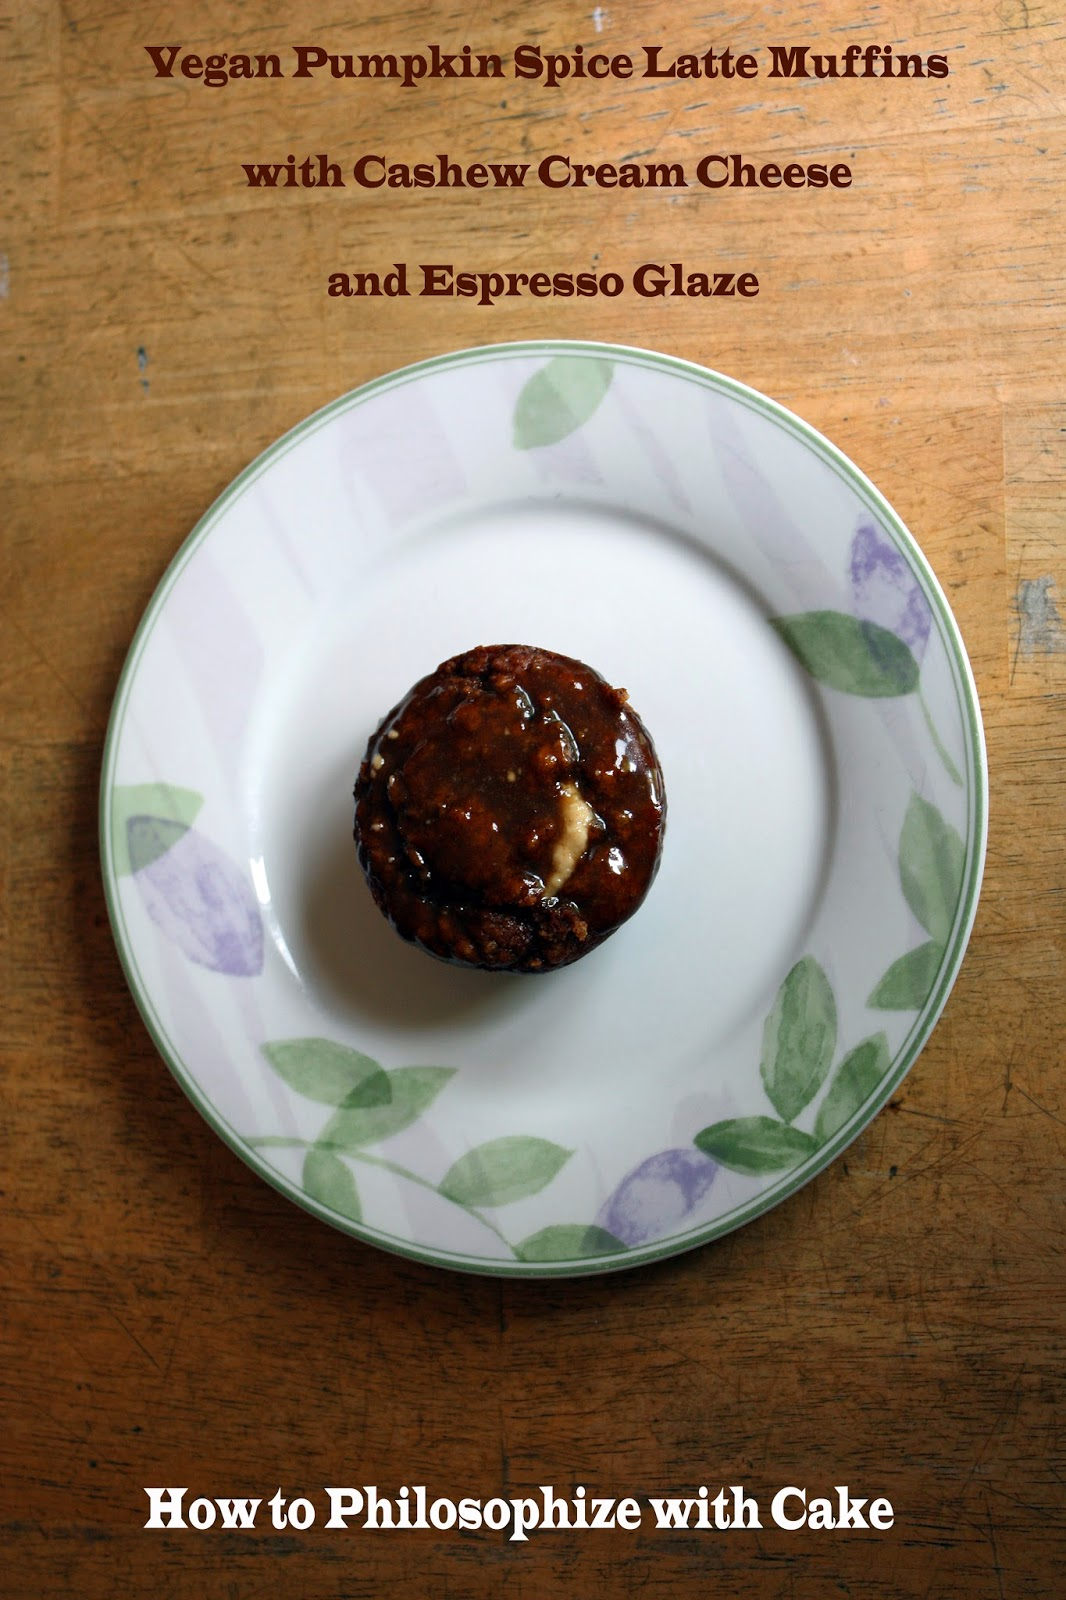 vegan pumpkin spice latte muffins with cashew cream cheese and espresso glaze - how to philosophize with cake